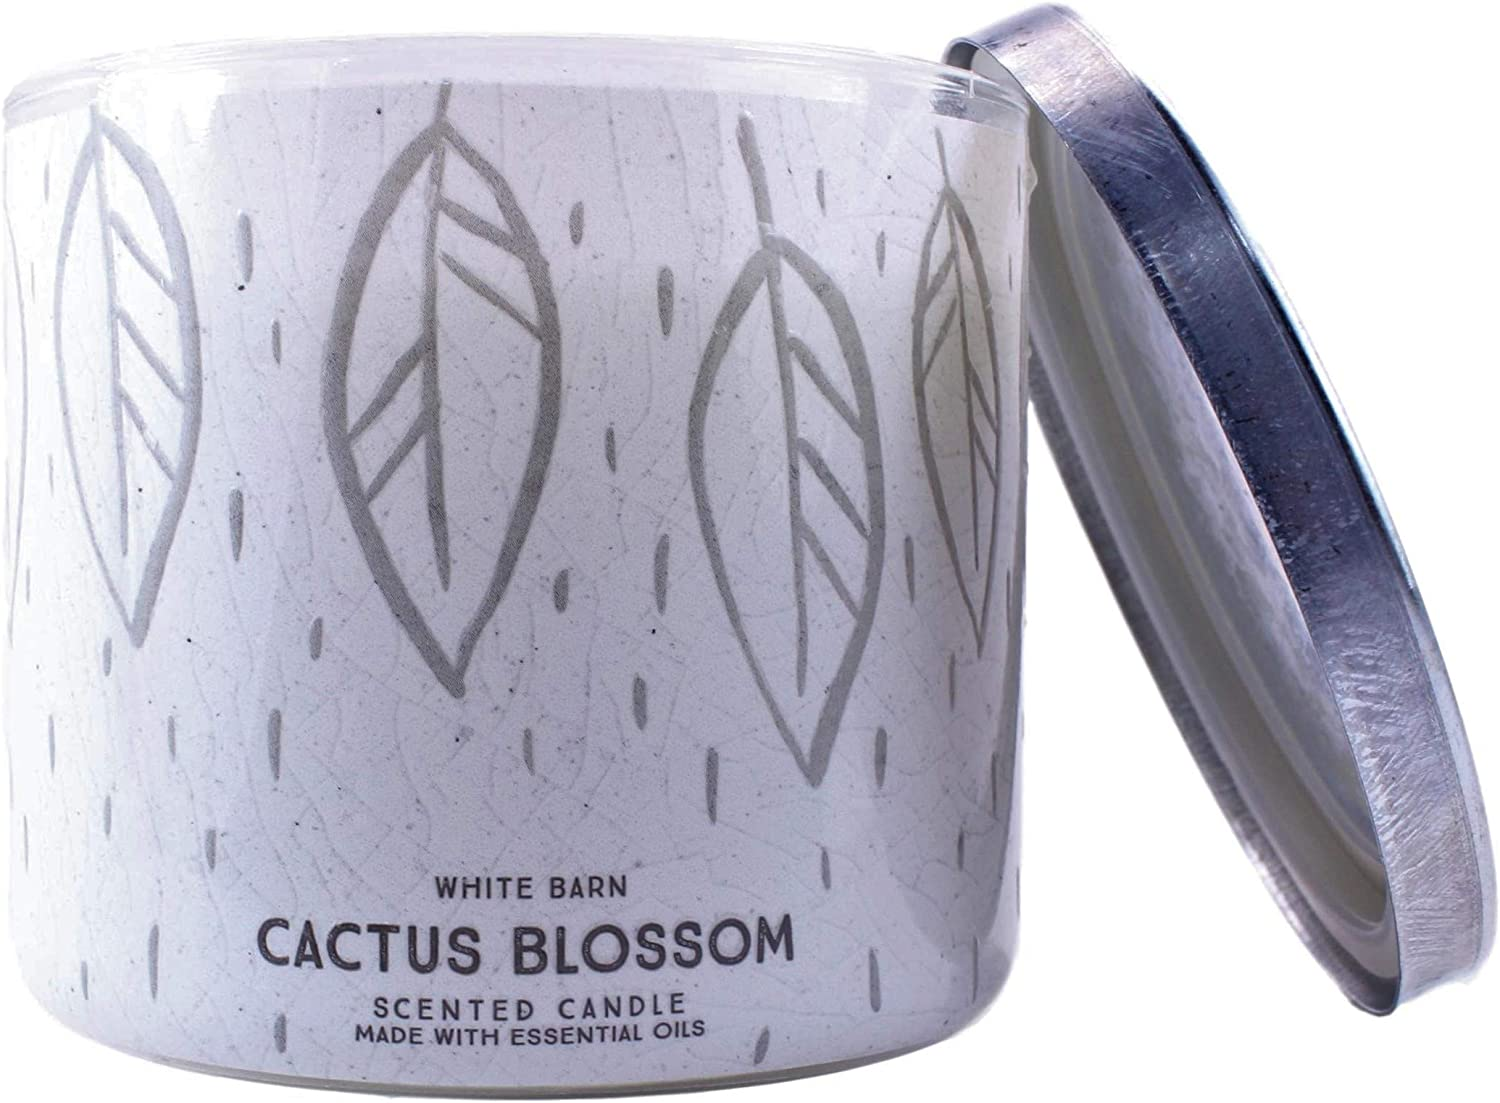 White Barn Bath and Body Works Cactus Blossom 3 Wick Scented Candle 14.5 Ounce